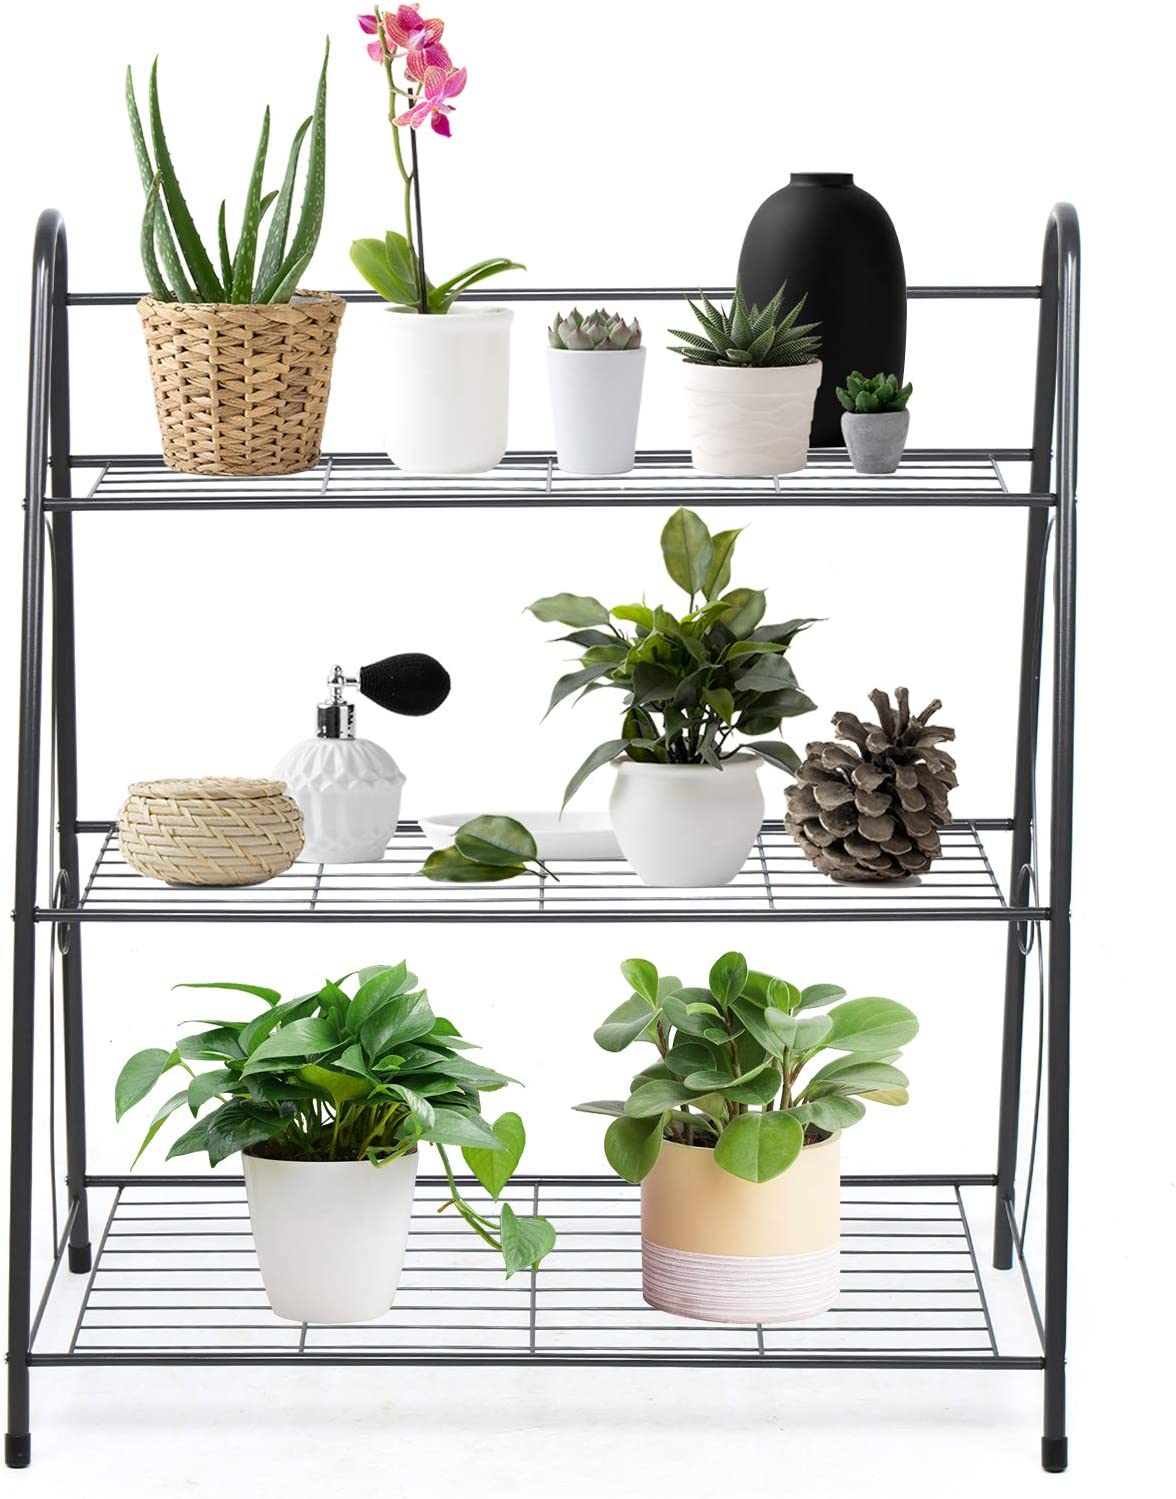 3-Tier Metal Challenge the lowest price of Japan ☆ Plant Stand Omaha Mall 24.8x12x28